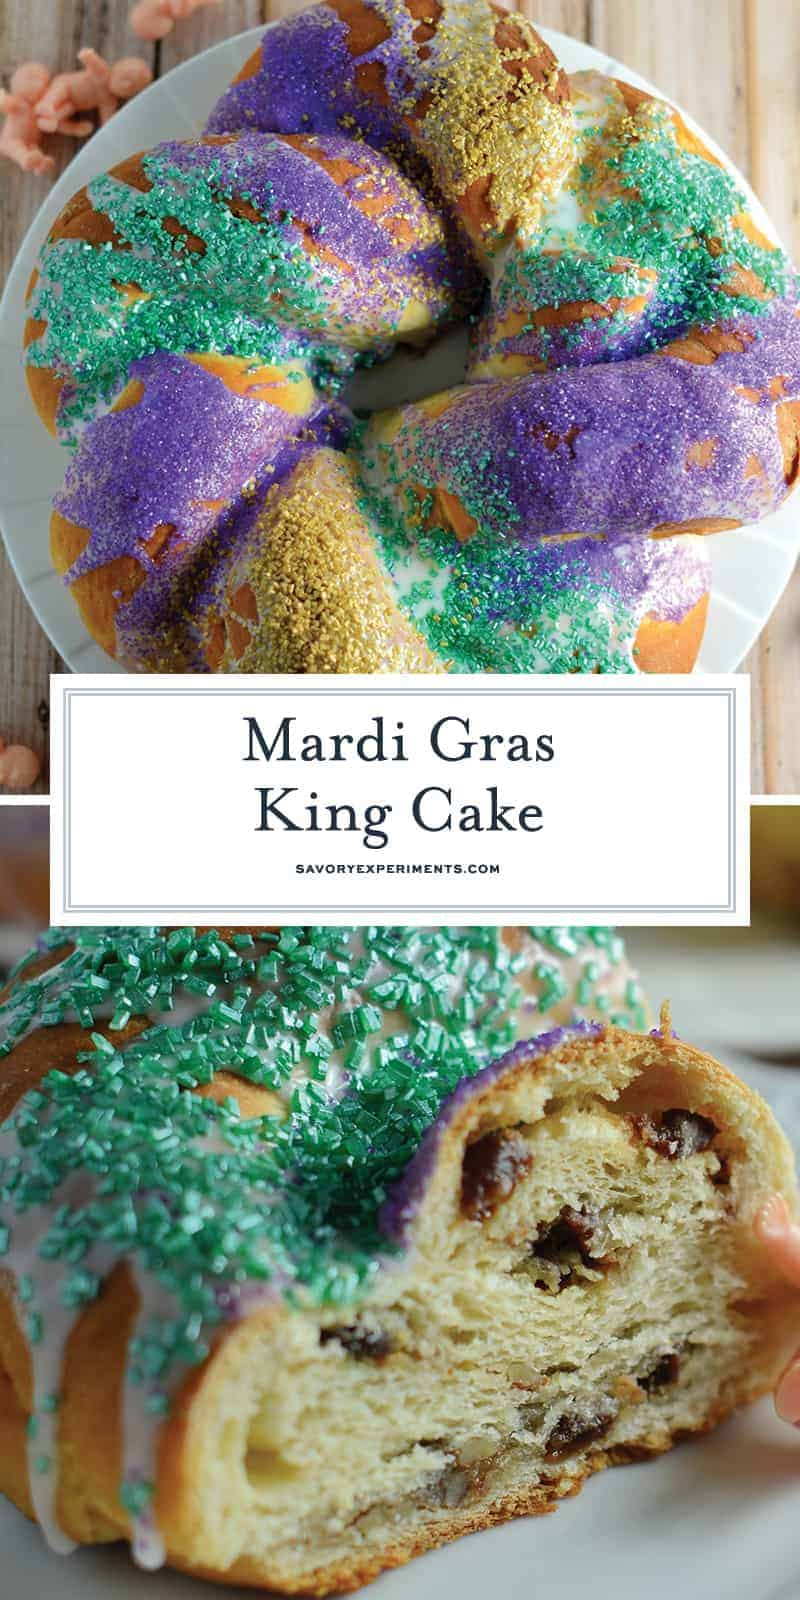 Make your own braided King Cake for Mardi Gras, complete with brown sugar pecan filling, icing, festive colors and one plastic baby. #mardigras #kingcake #fattuesday www.savoryexperiments.com